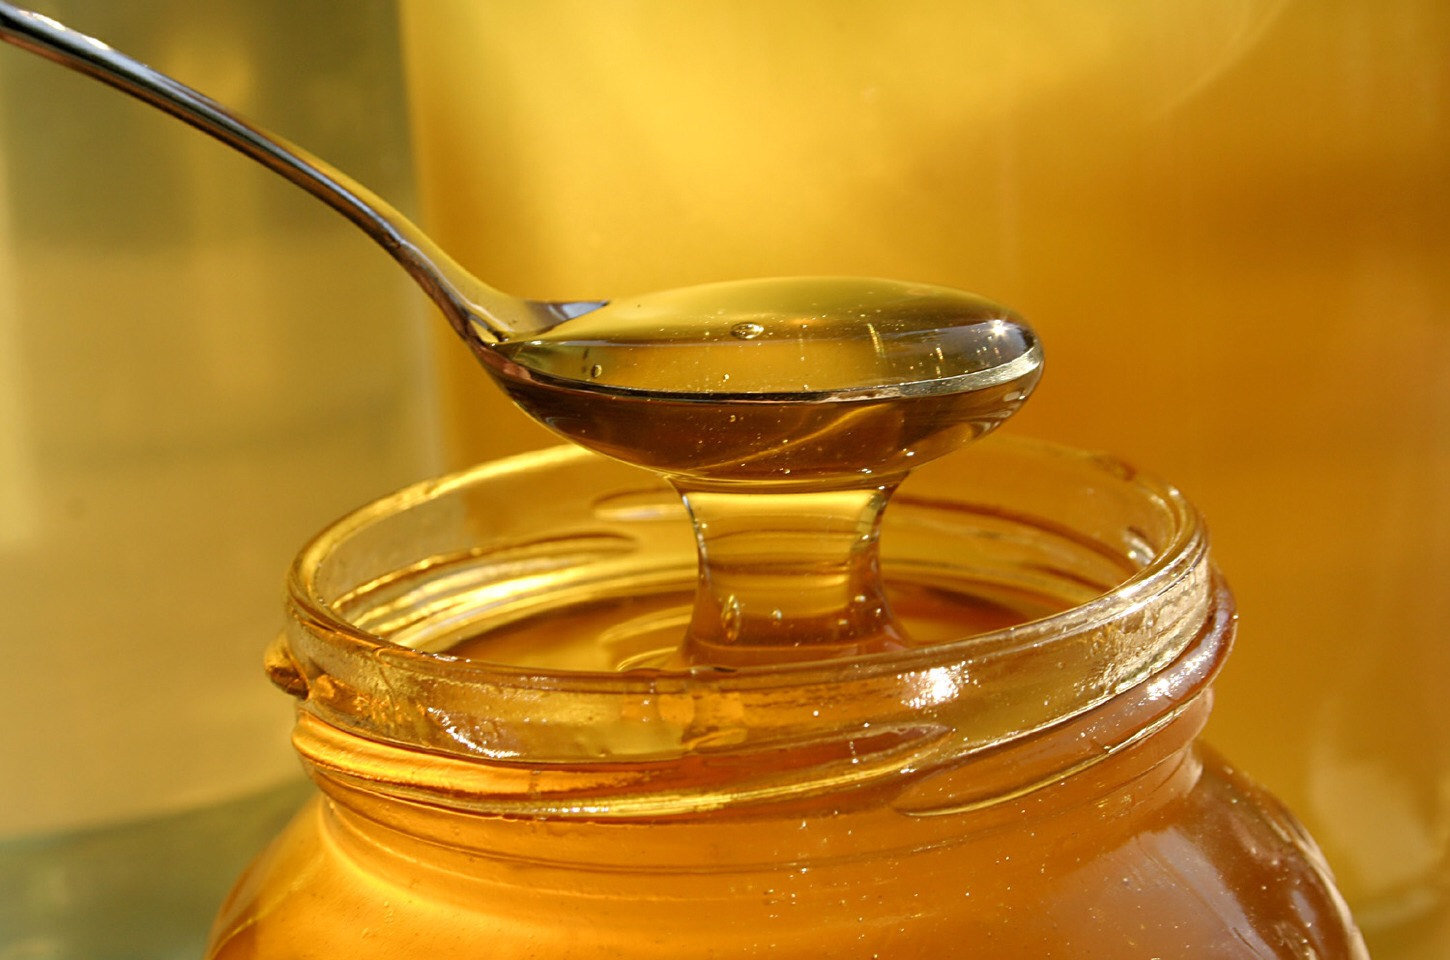 Rub a light layer of honey into your skin, and let it sit for 30 minutes. Rinse off with warm water.